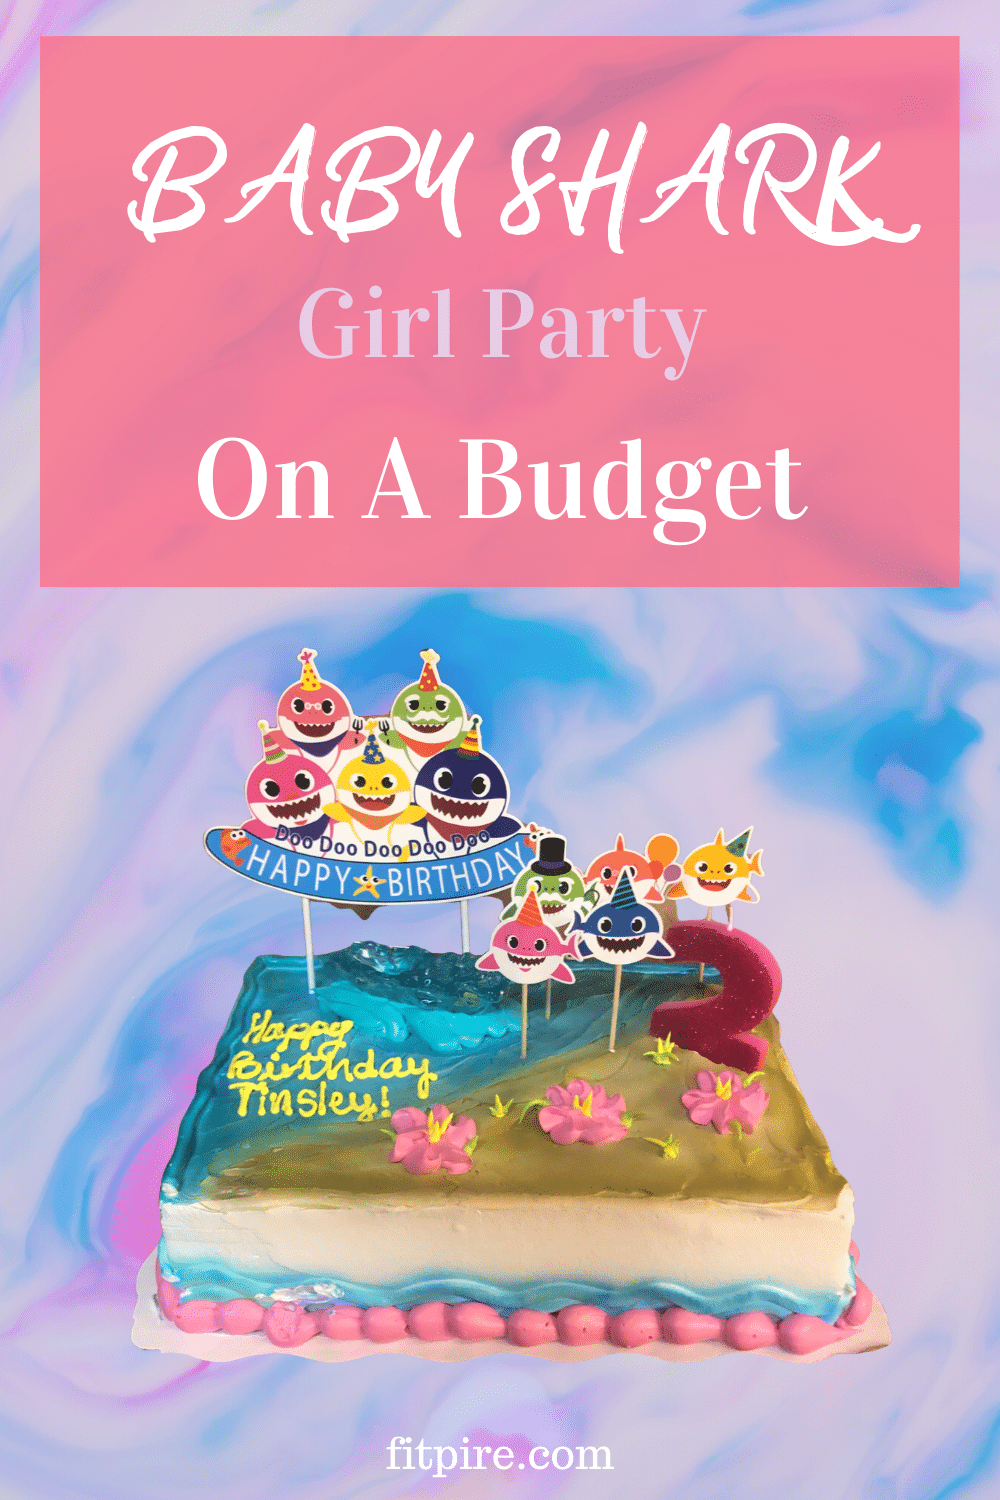 Baby Shark Girl Party On A Budget